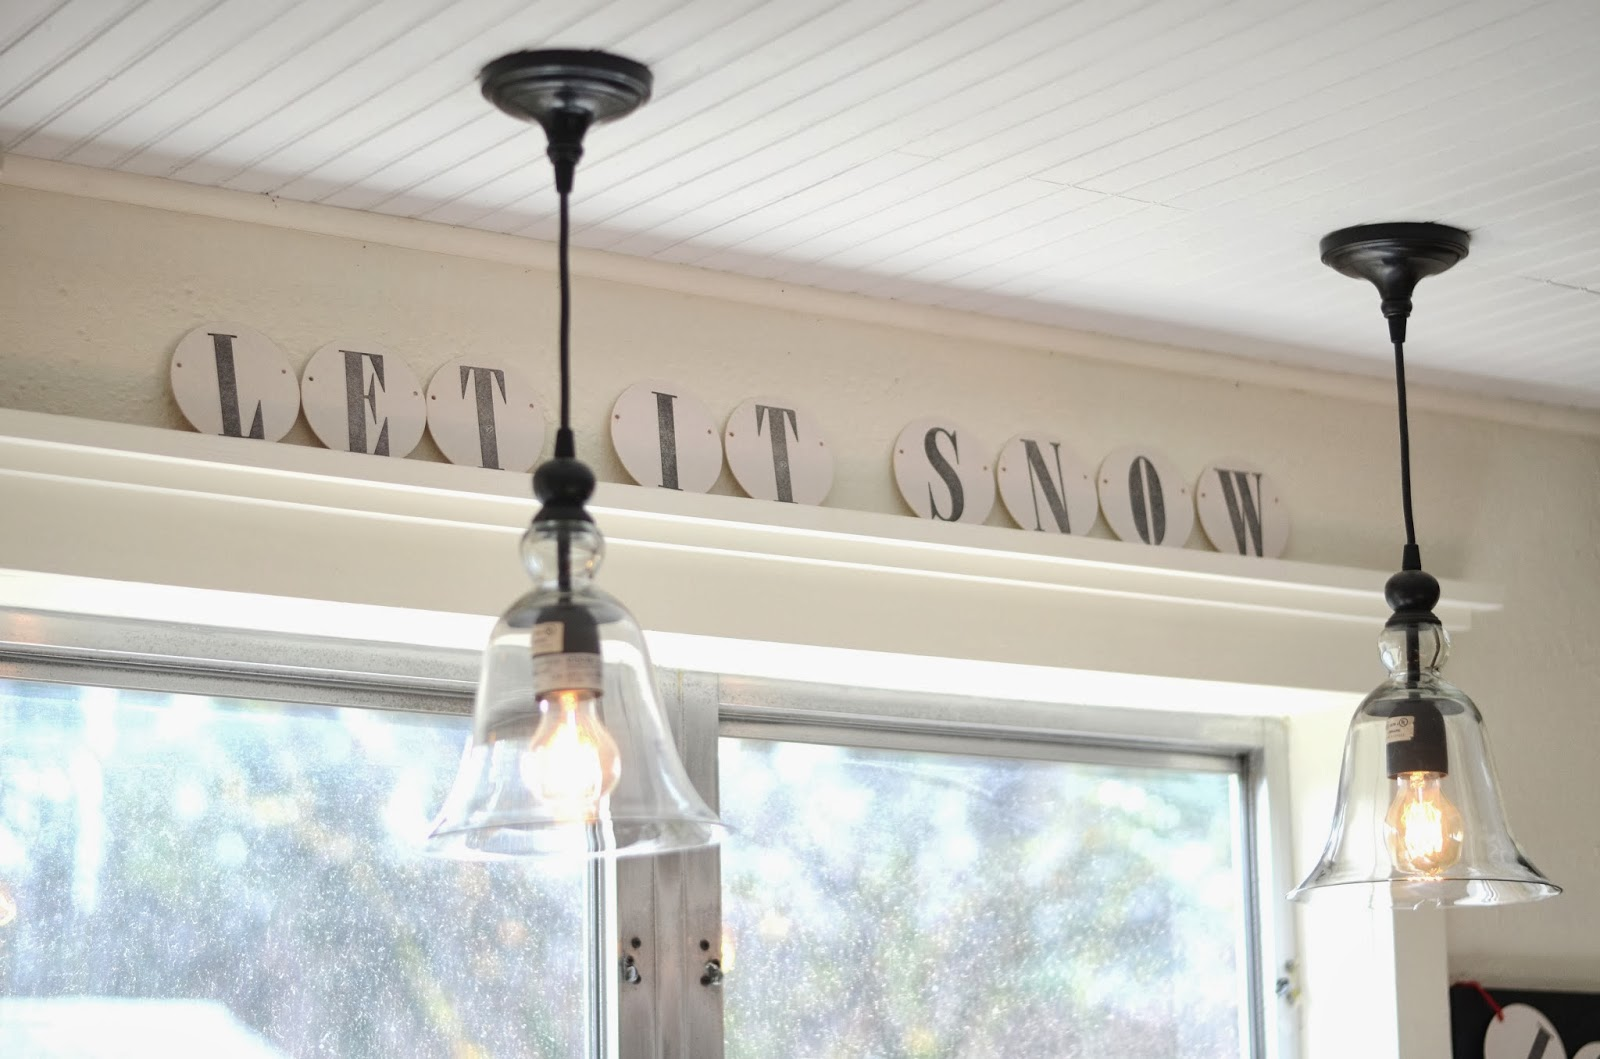 kitchen sink pendant light kingston brass faucets iron and twine our almost finished makeover